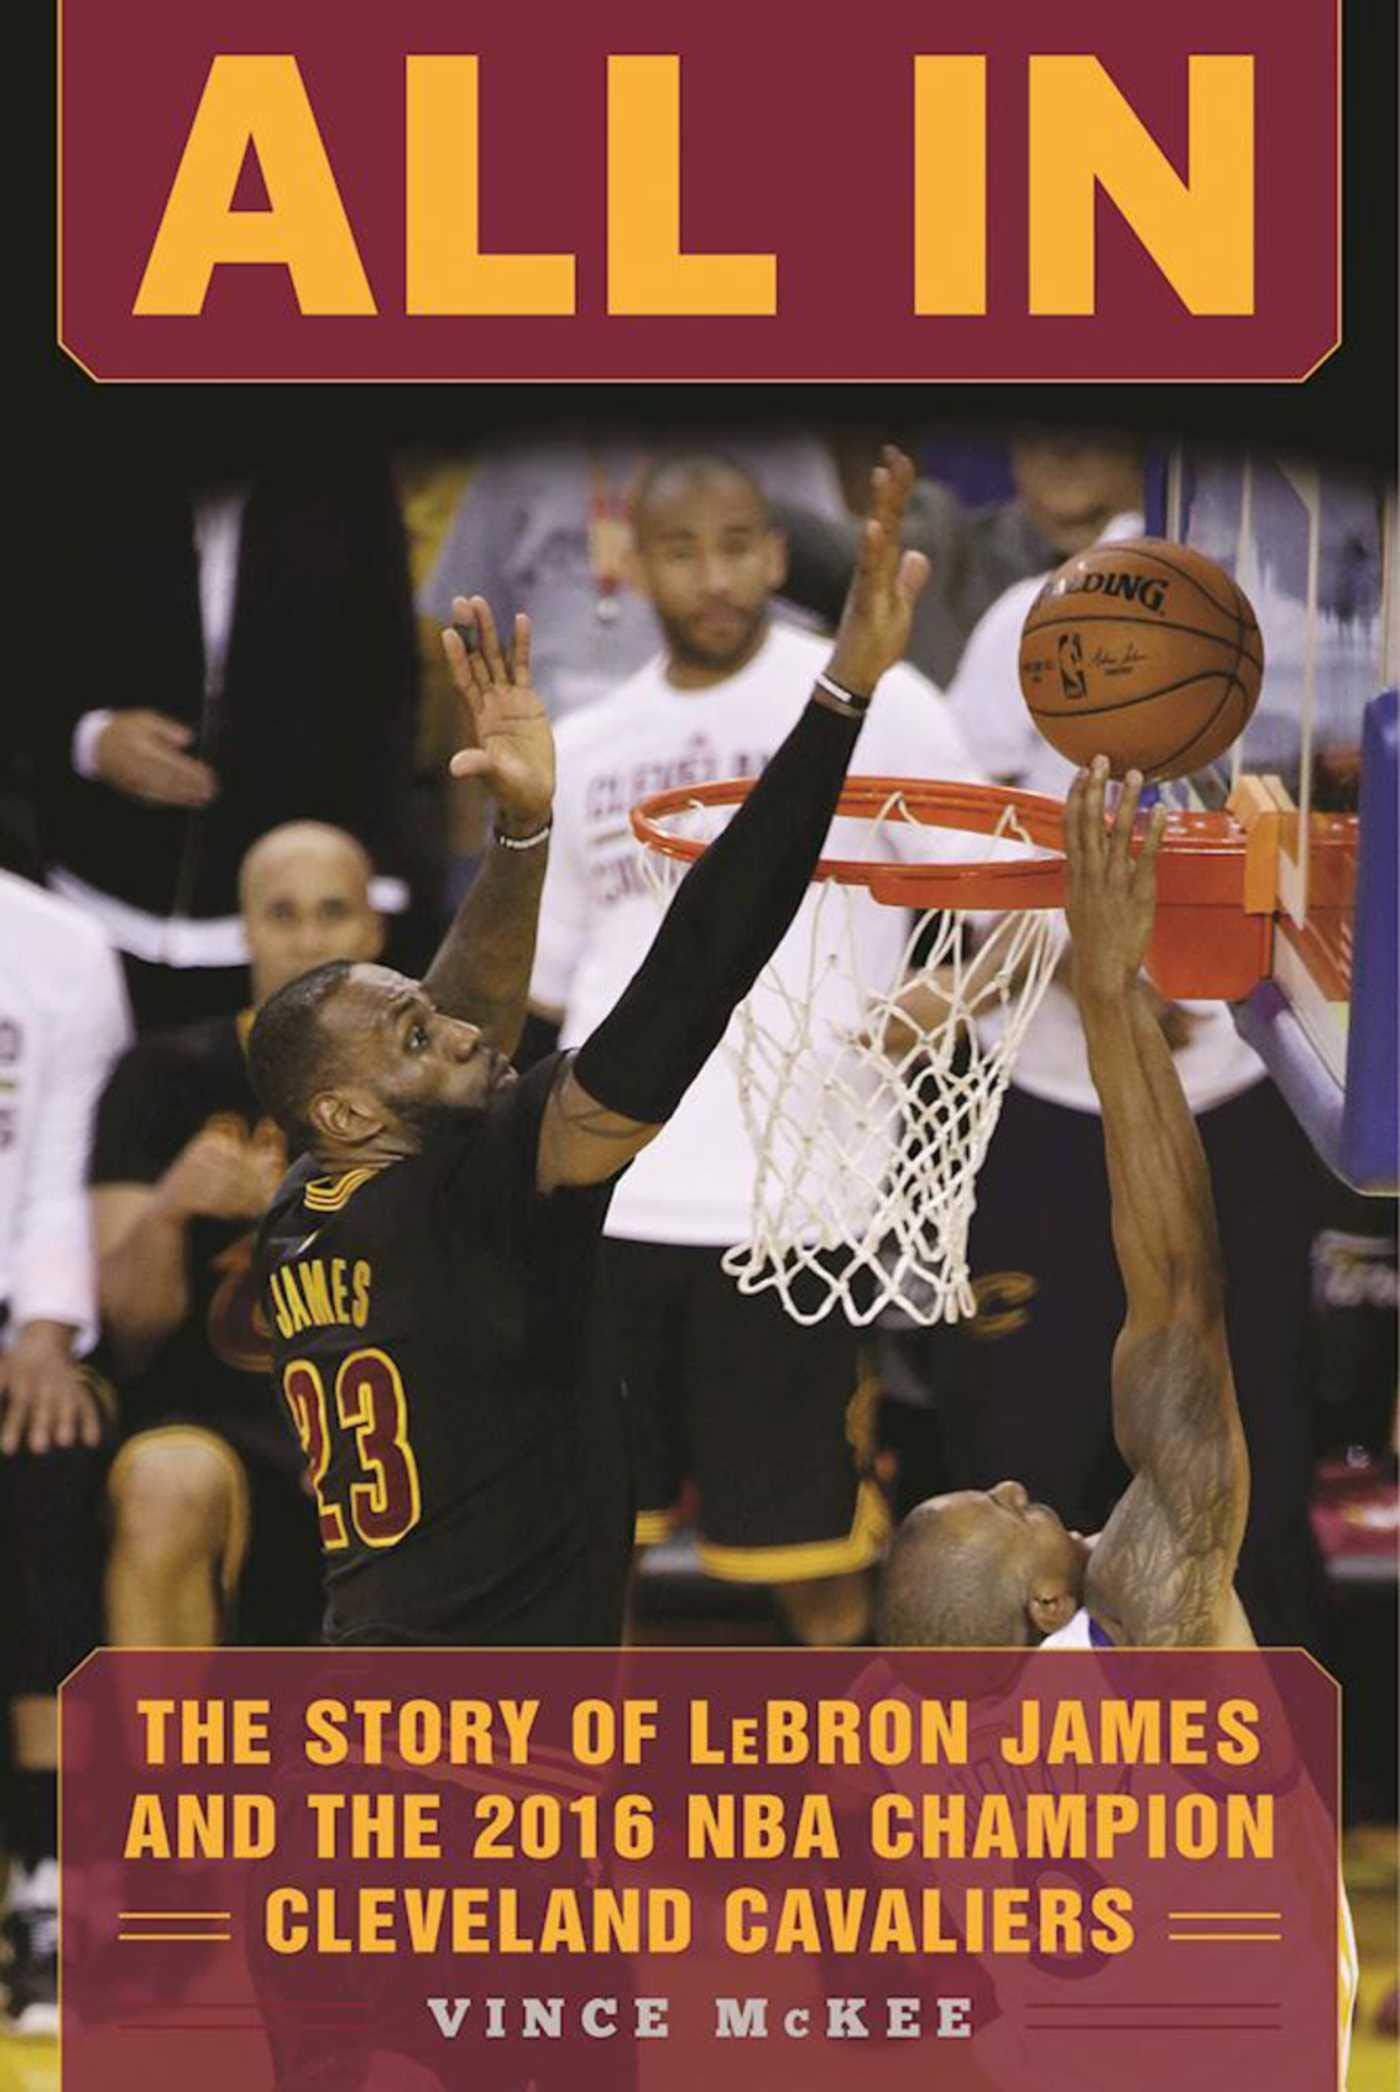 7757f7a0f7955 All In  The Story of LeBron James and the 2016 NBA Champion Cleveland  Cavaliers  Vince McKee  9781683580744  Amazon.com  Books